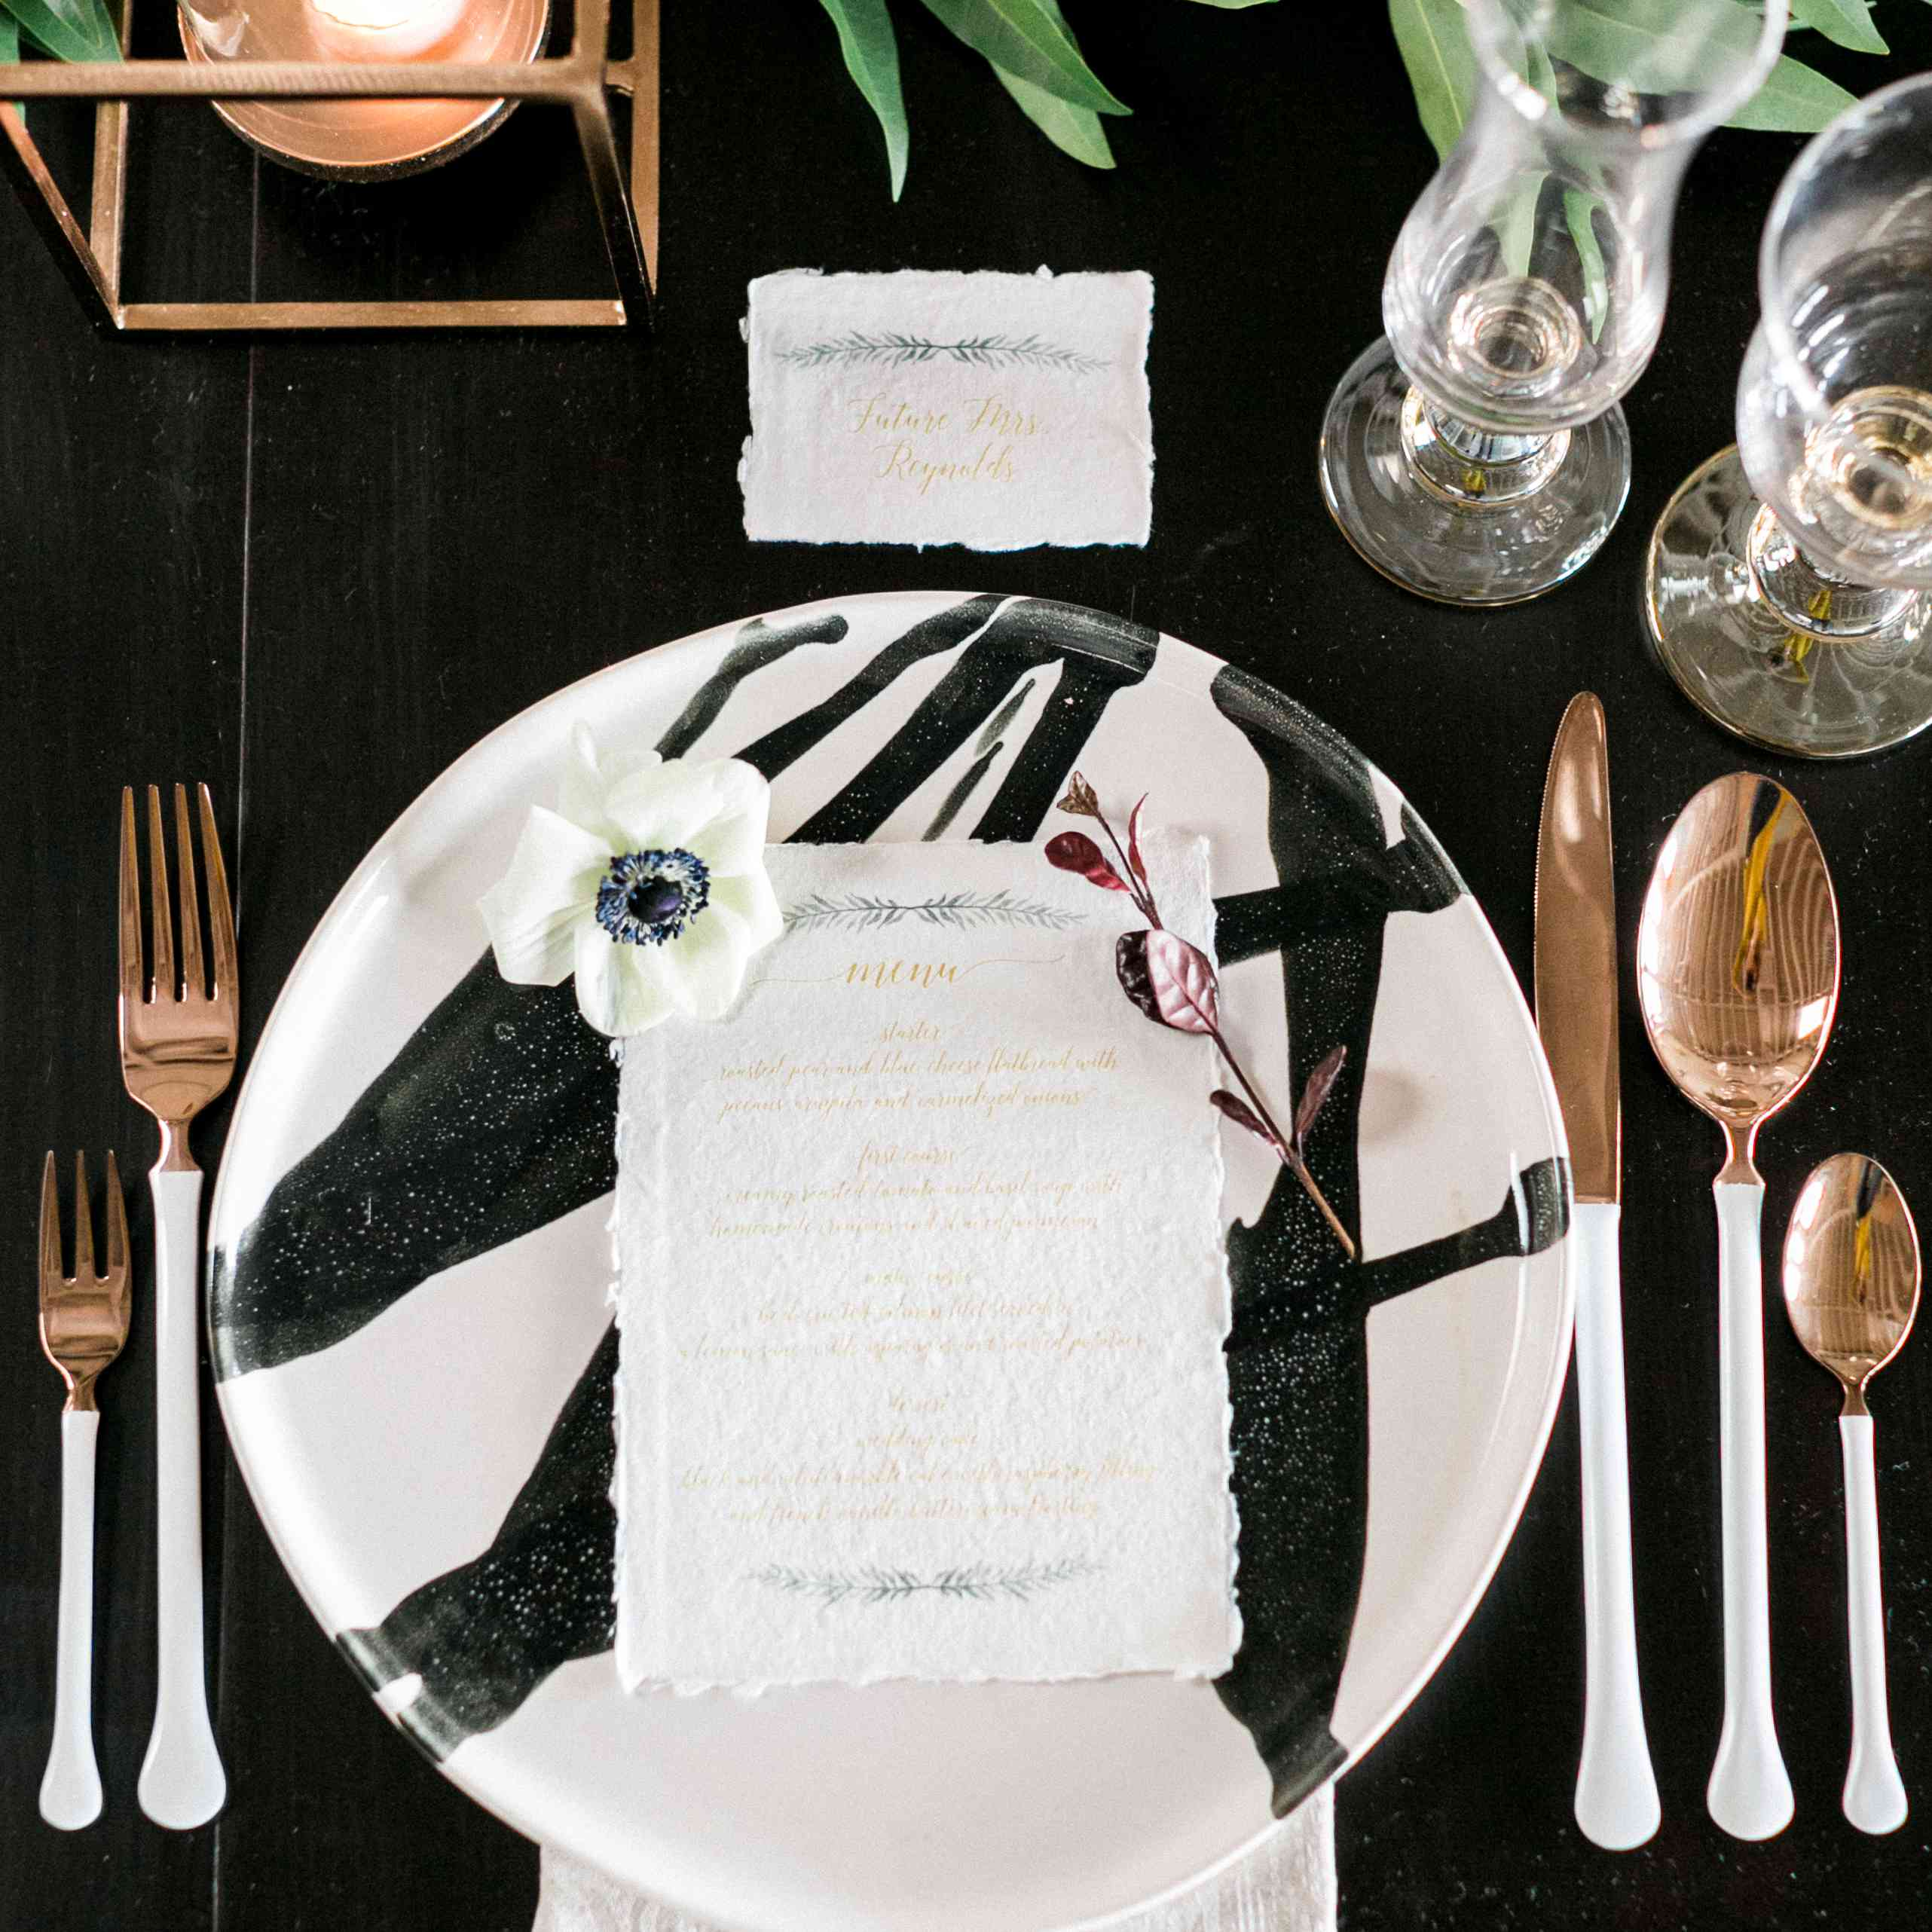 Black and white party tablescape with rose gold silverware and greenery garland